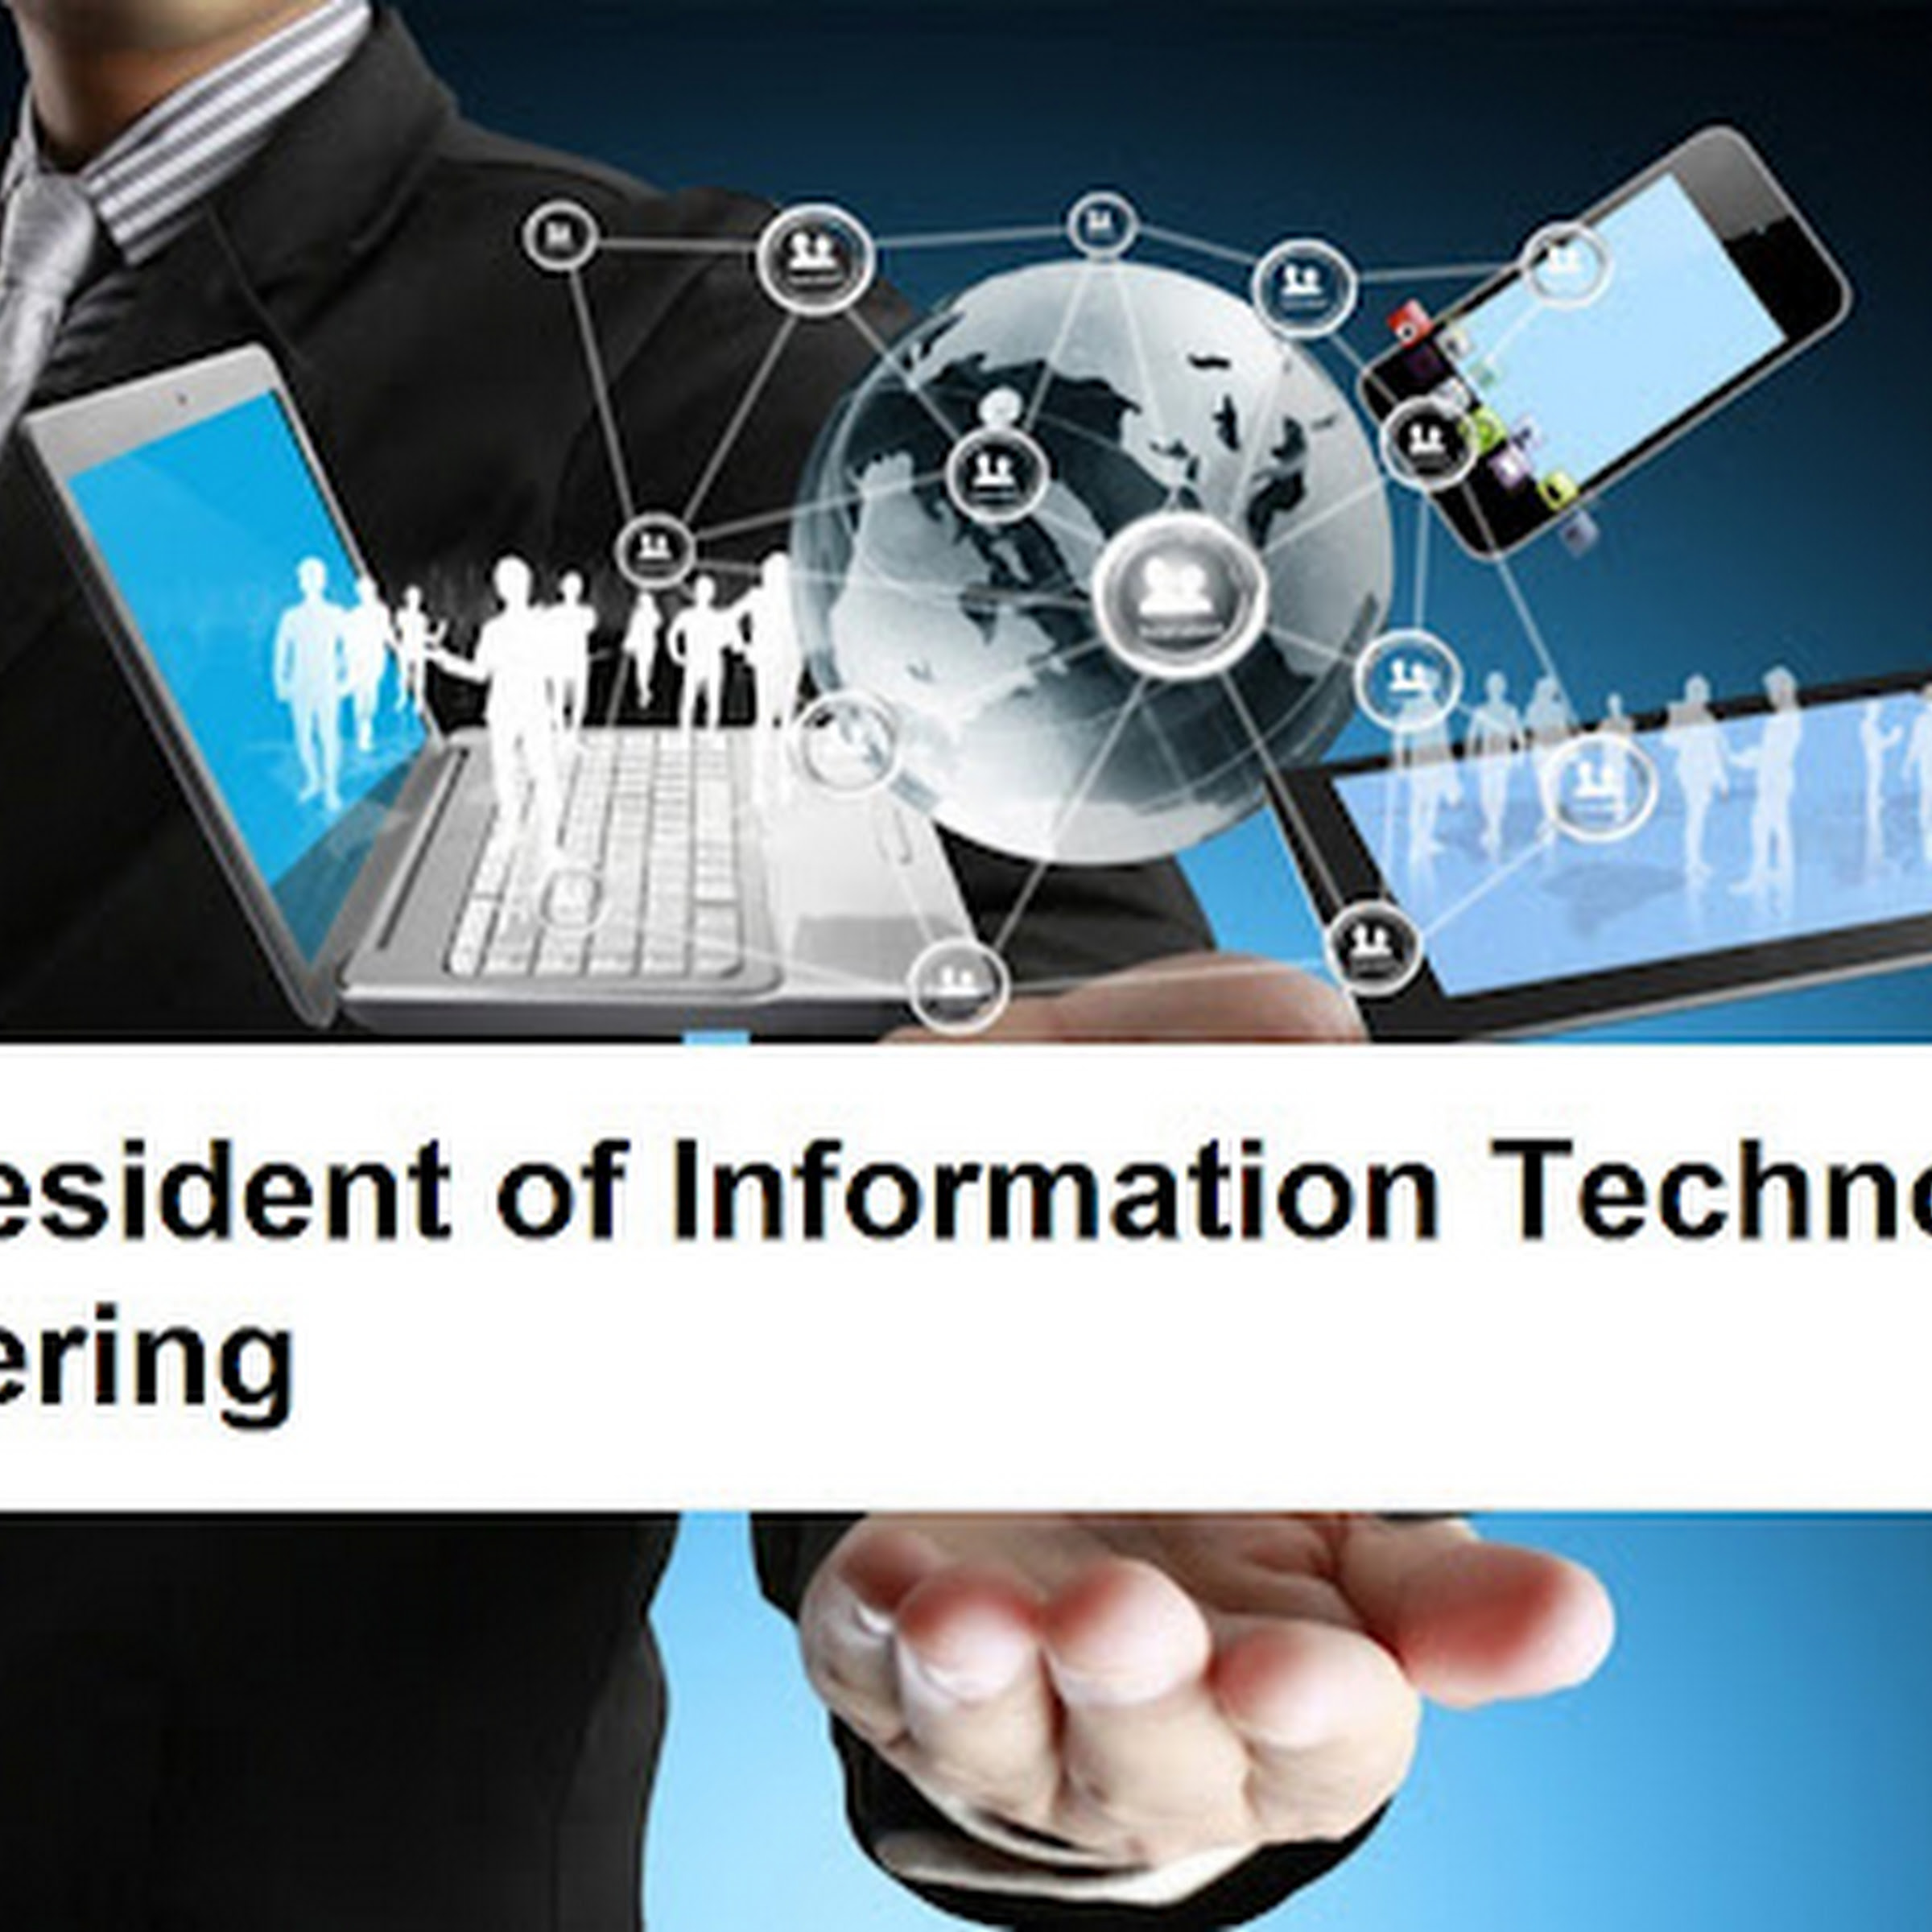 Vice President of Information Technology Engineering